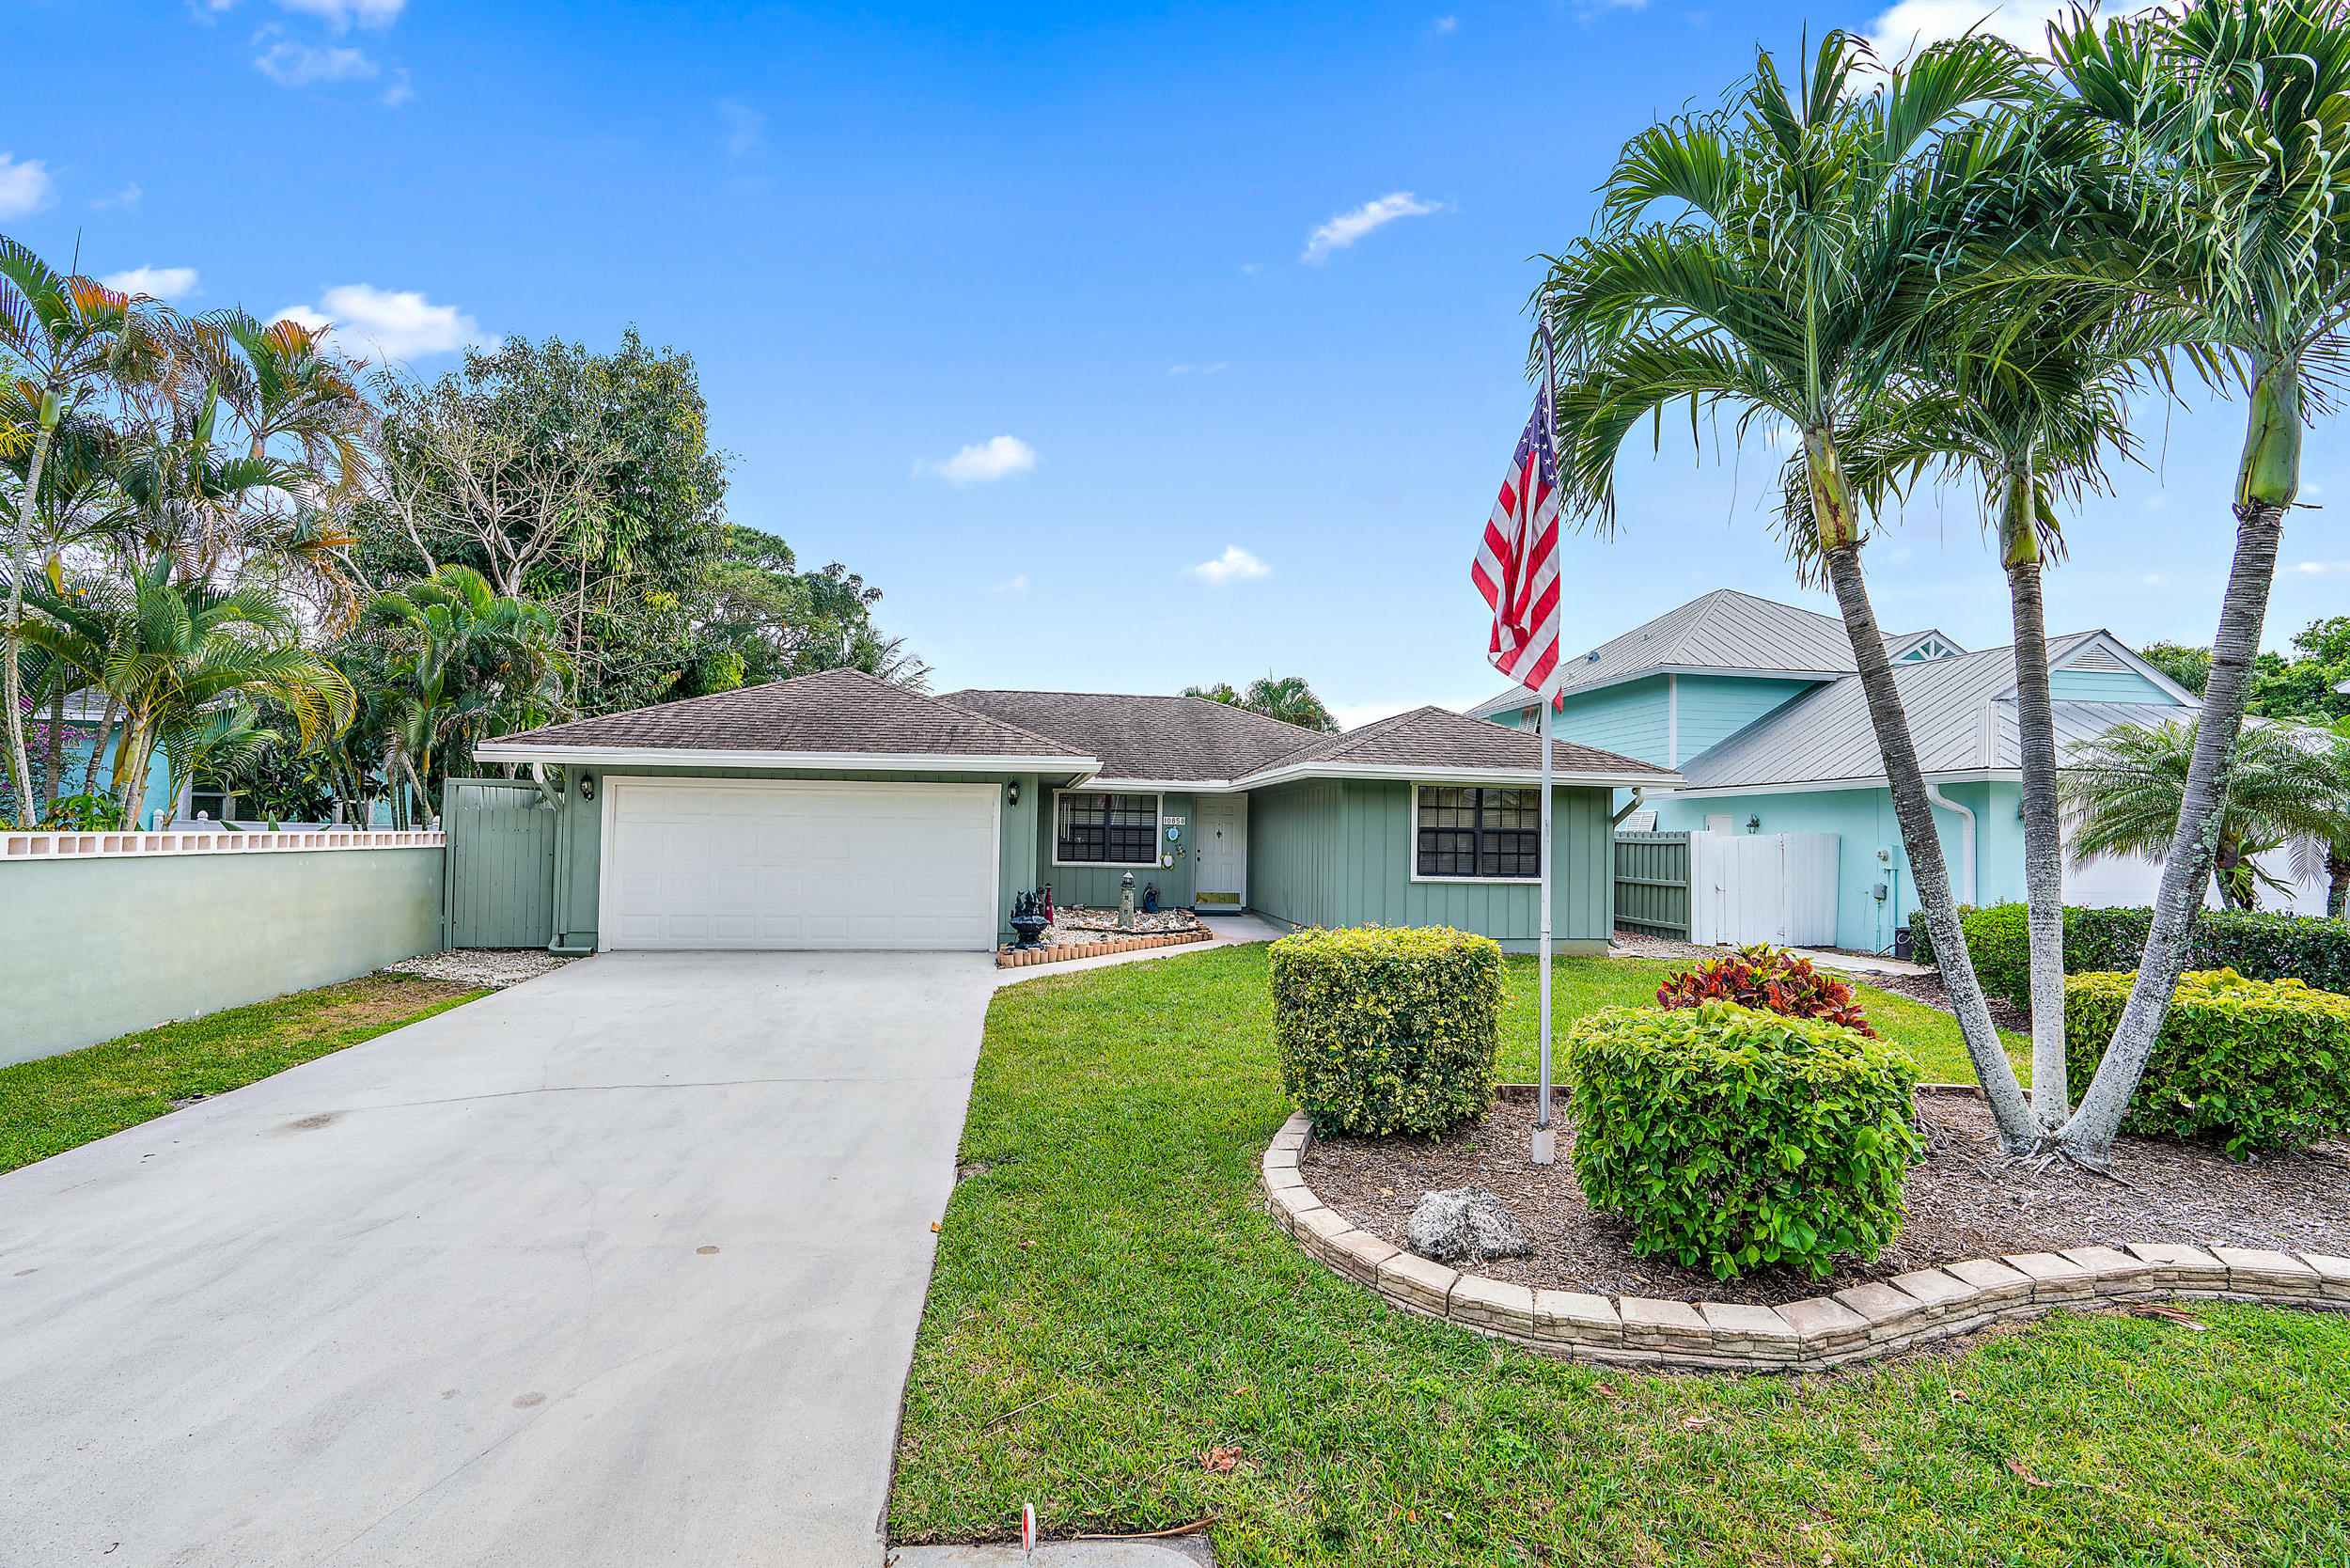 New Home for sale at 10858 Hobart Street in Tequesta